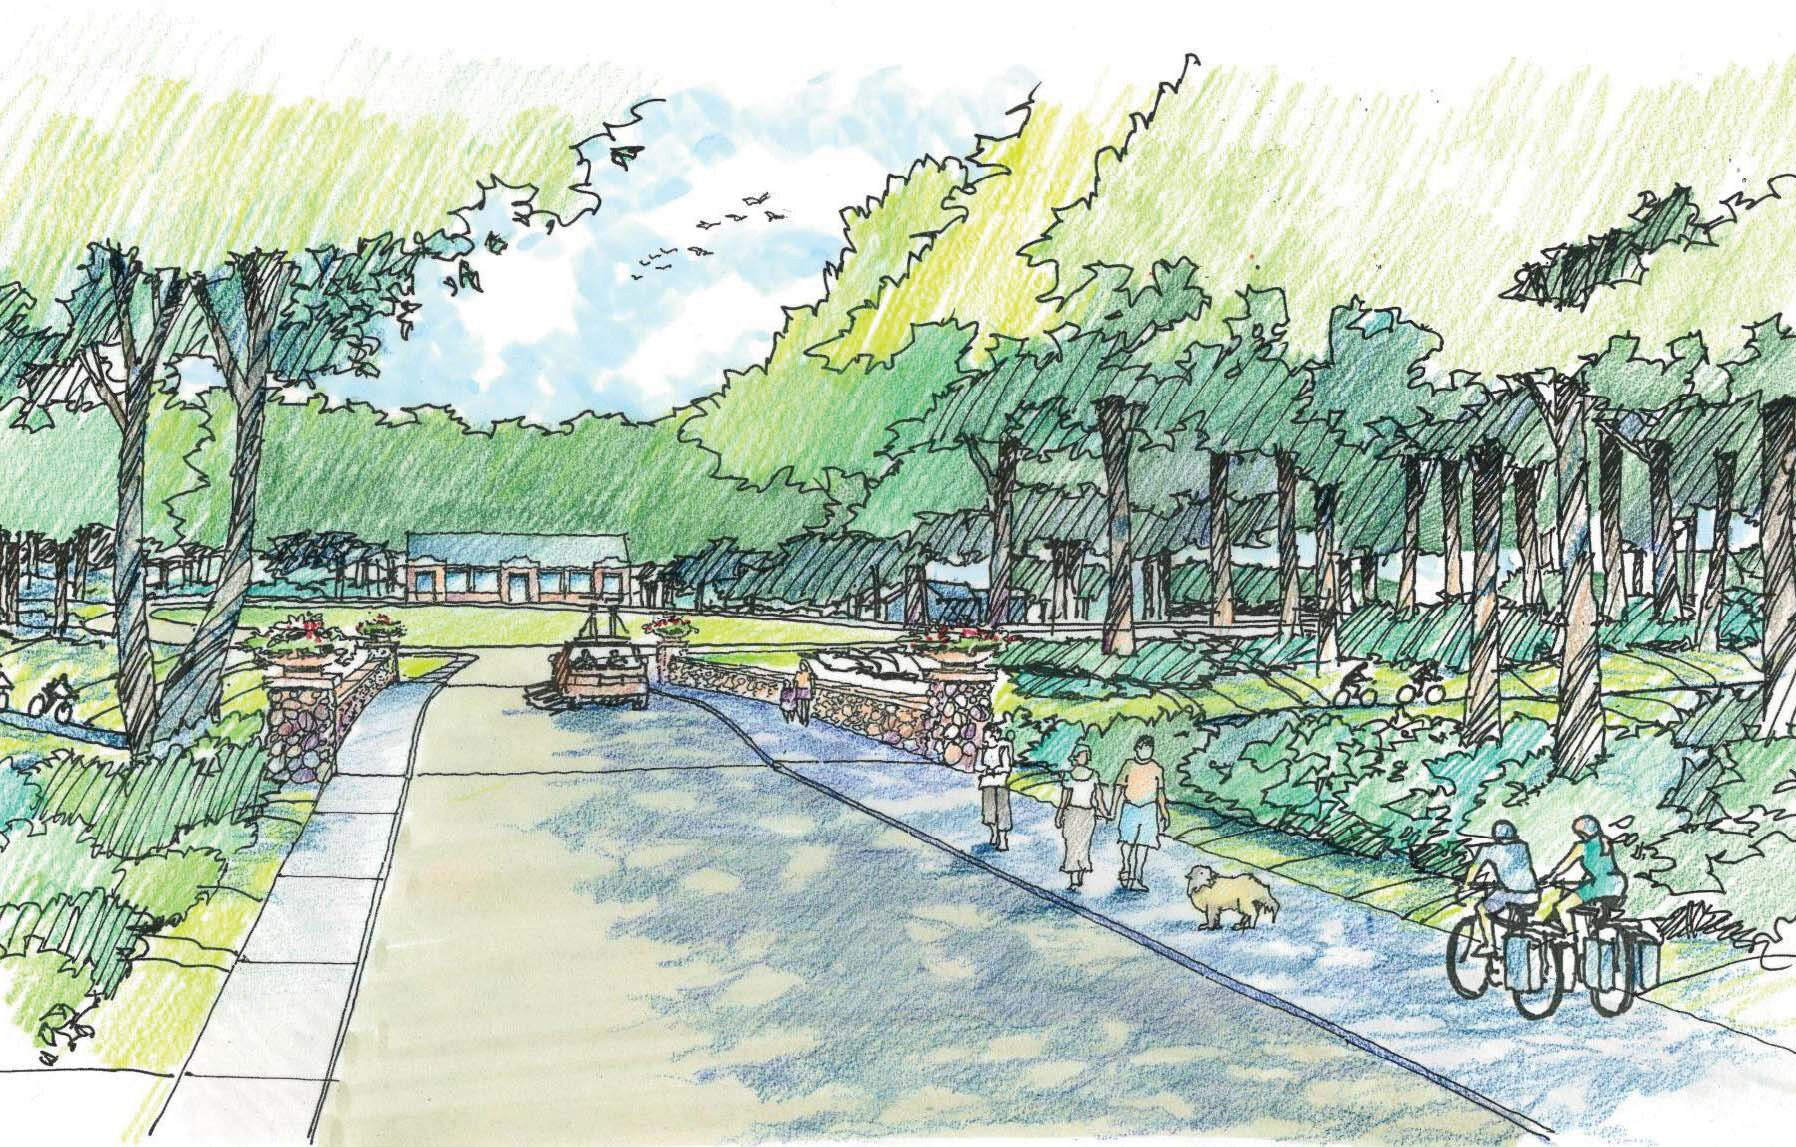 The newly released Franke Park Master Plan aims for a broad blueprint for the future of the park.